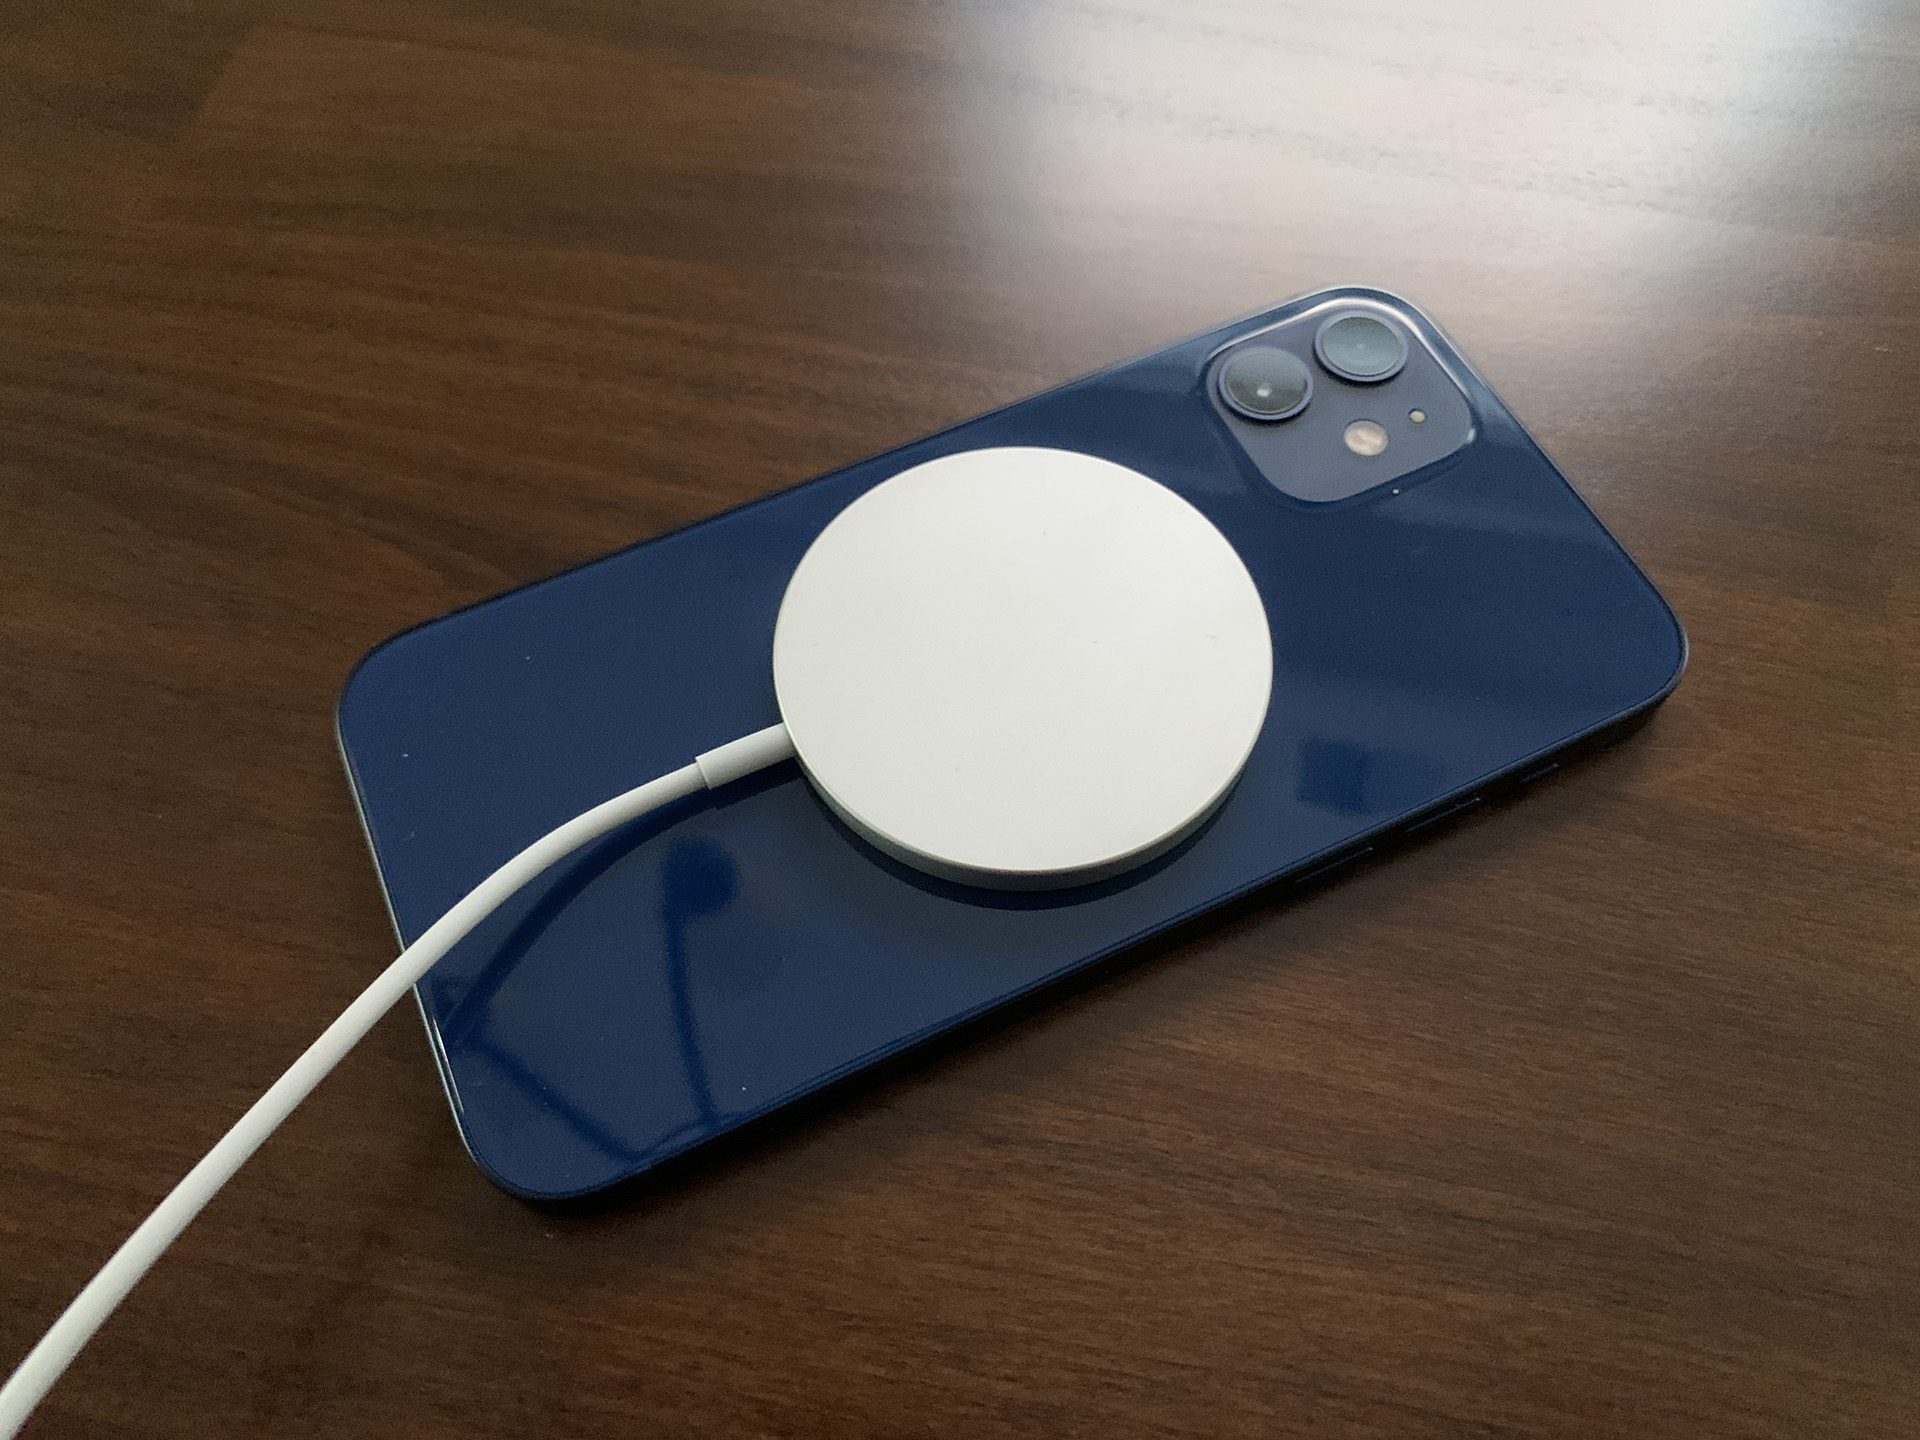 The Apple MagSafe charger attached to an iPhone 12.